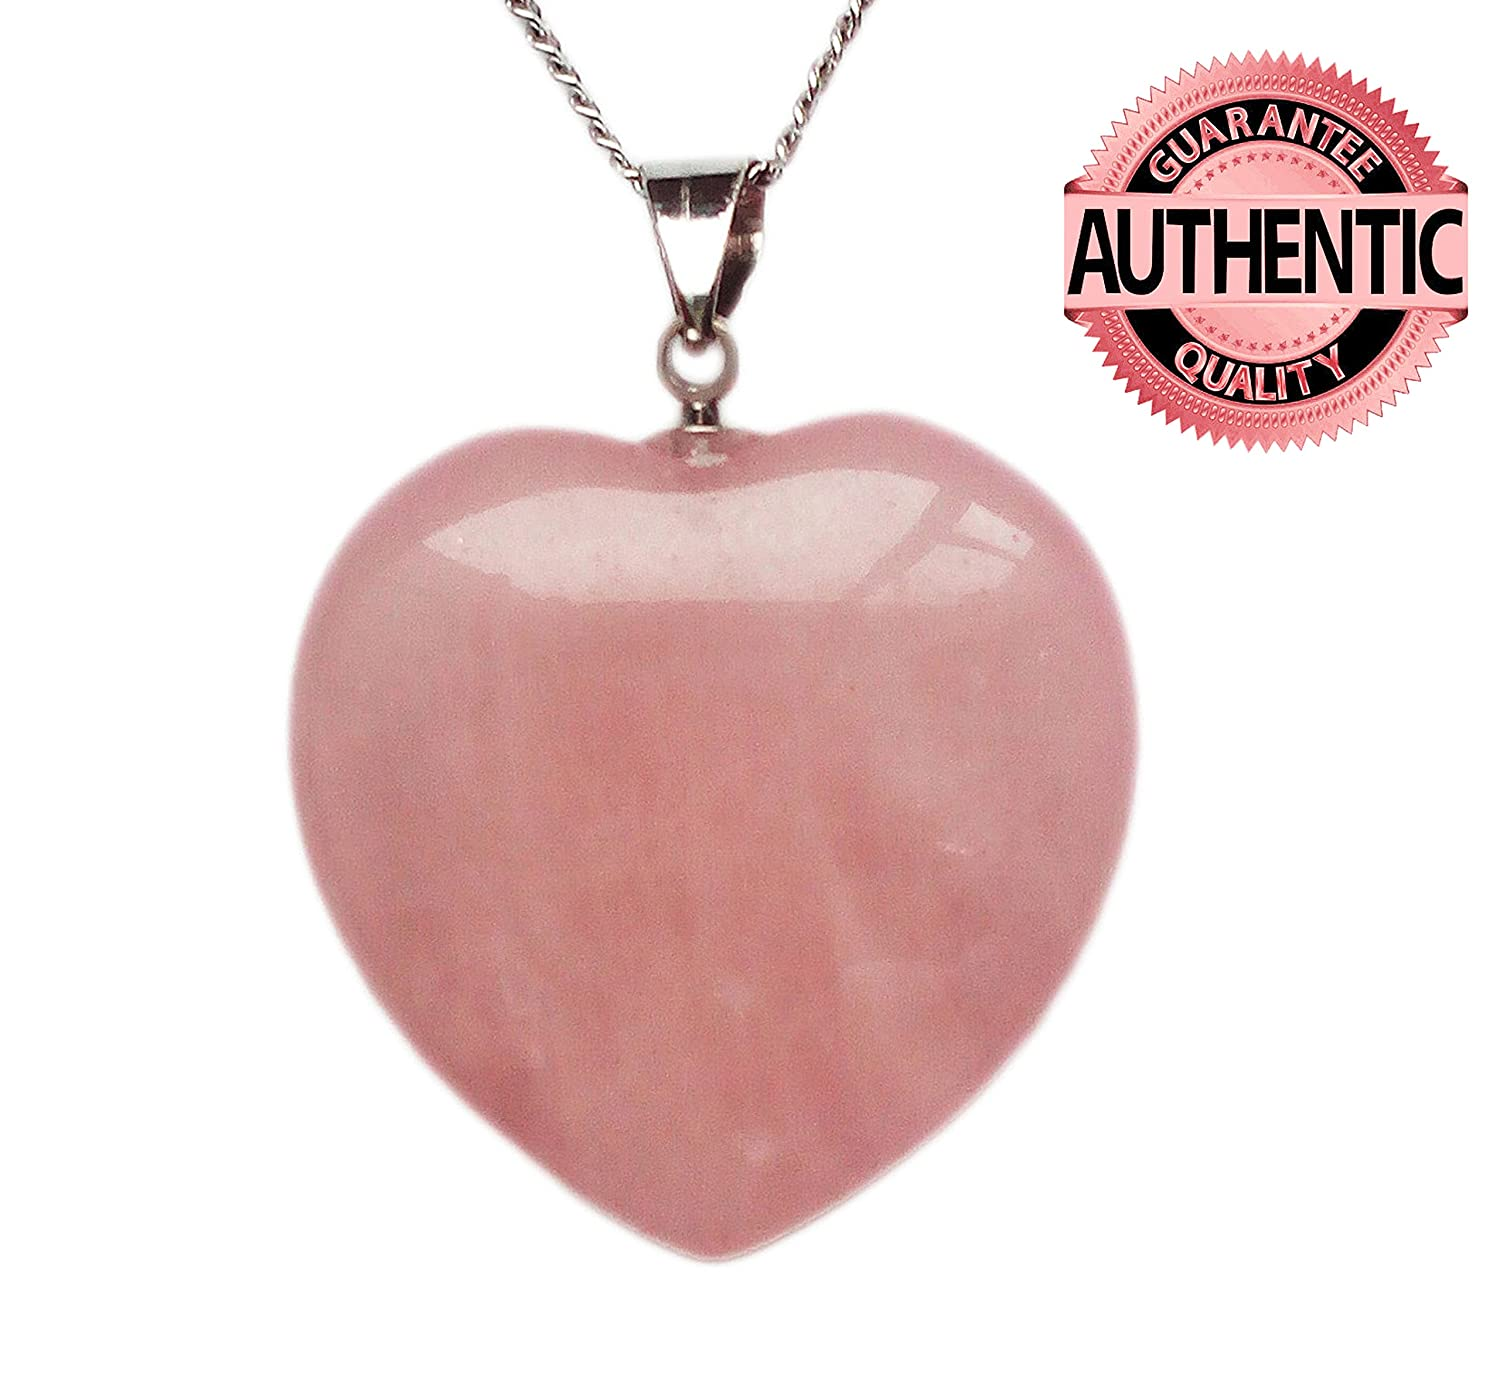 ed33a5427 Amazon.com: Rose Quartz Crystal Pendant Necklace, Puffy Heart Shape, with  18